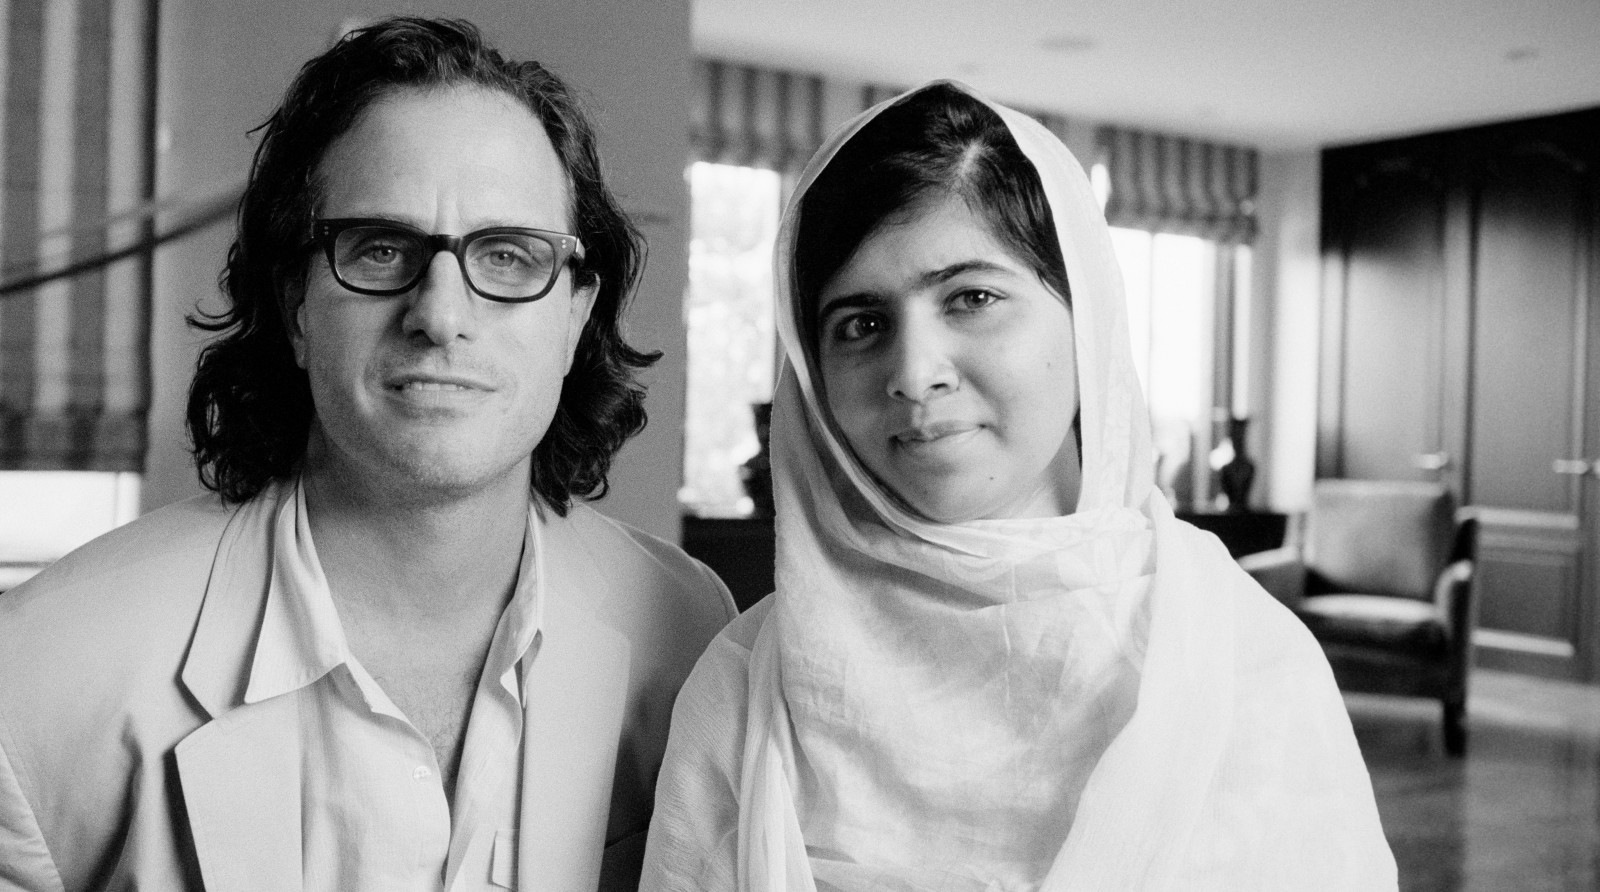 """Davis Guggenheim and Malala Yousafzai sat down and talked for several hours. """"He Named Me Malala"""" is the outcome of their conversation."""